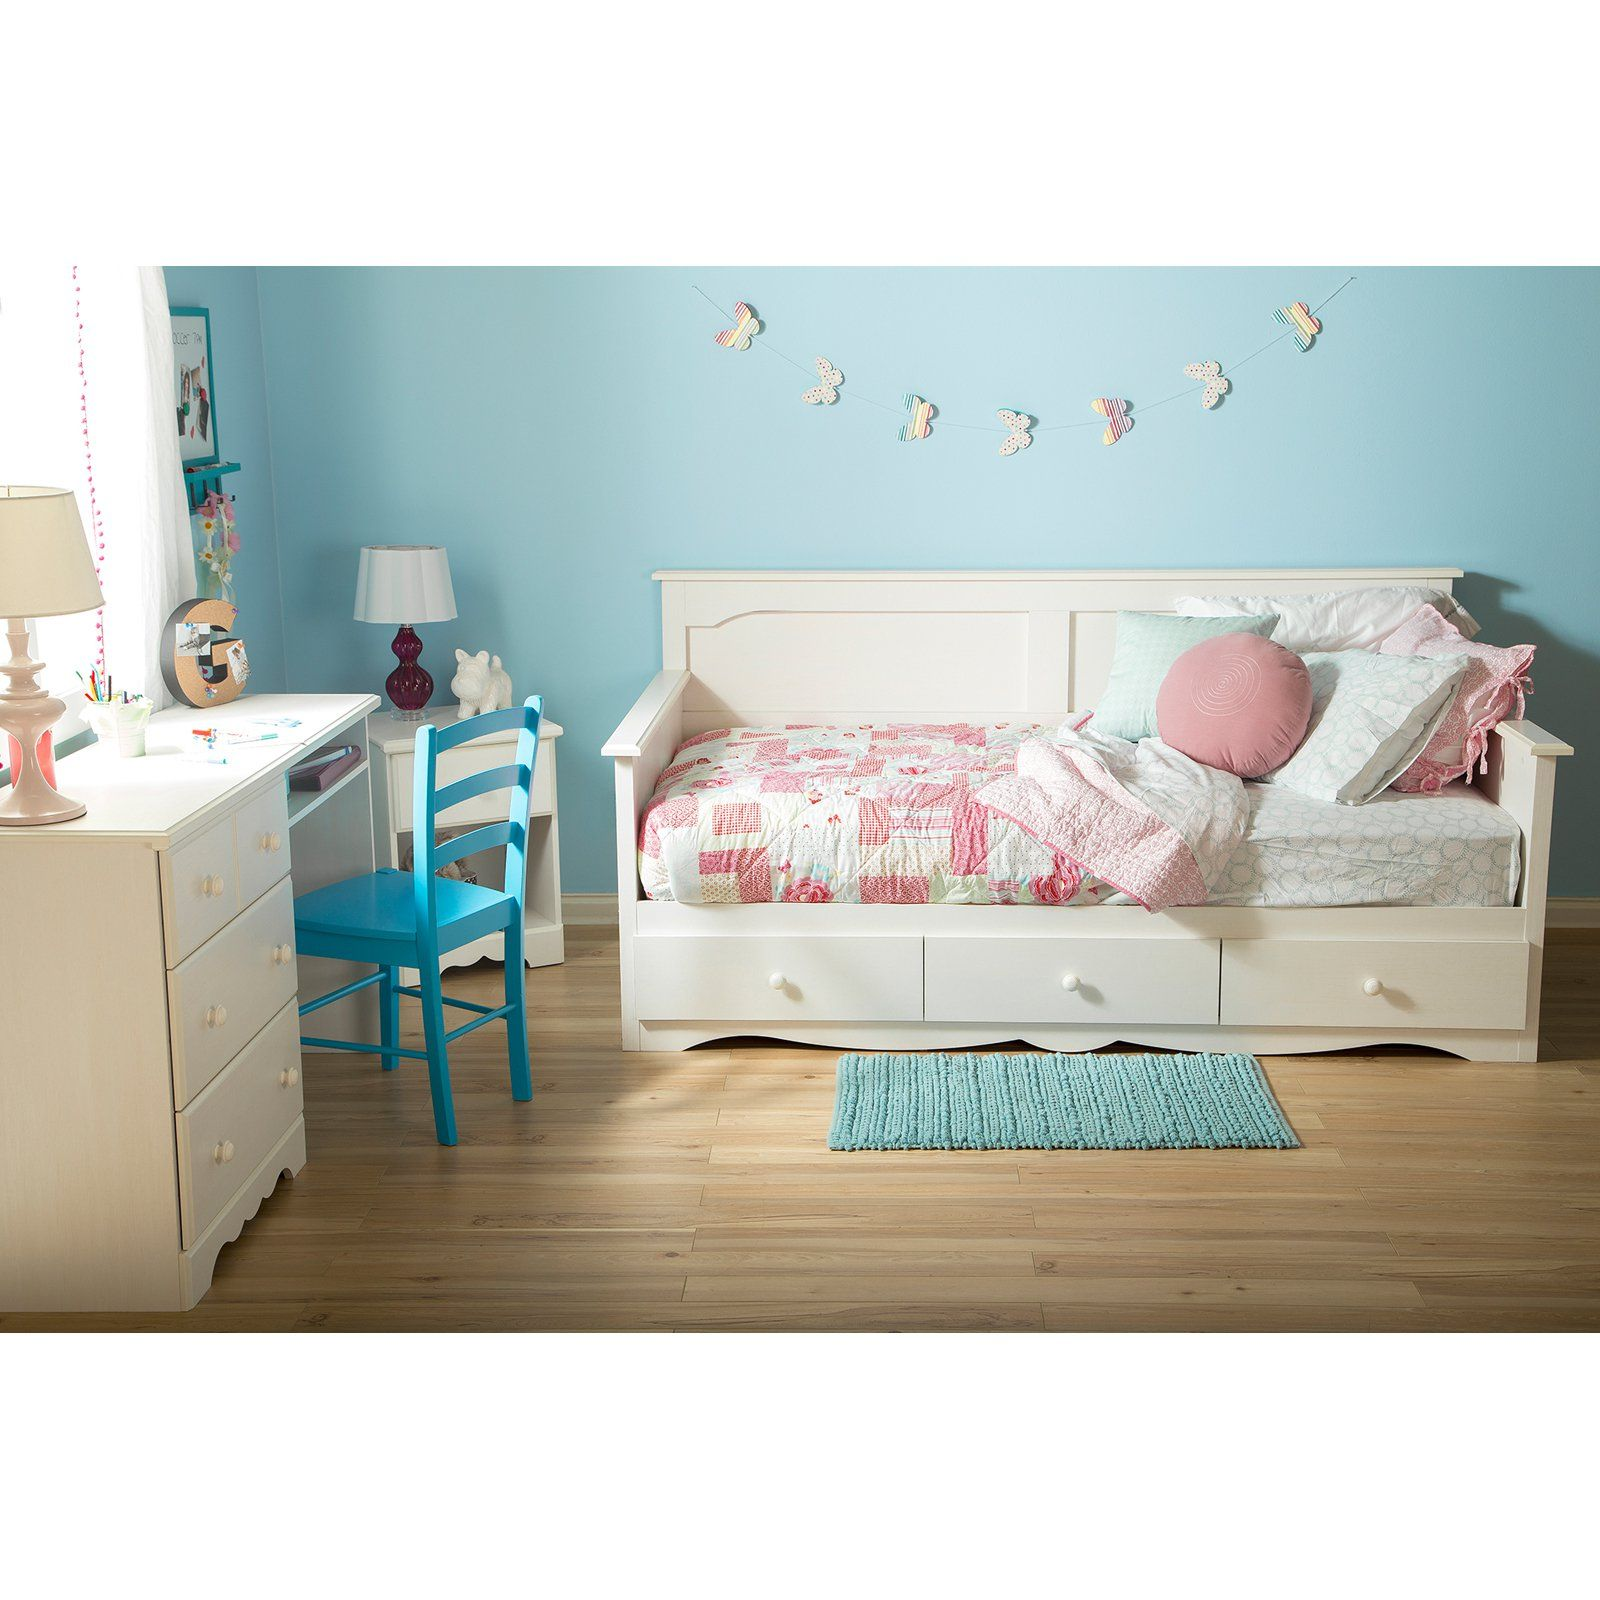 - Home Daybed With Storage, Twin Daybed With Storage, Kids Bedroom